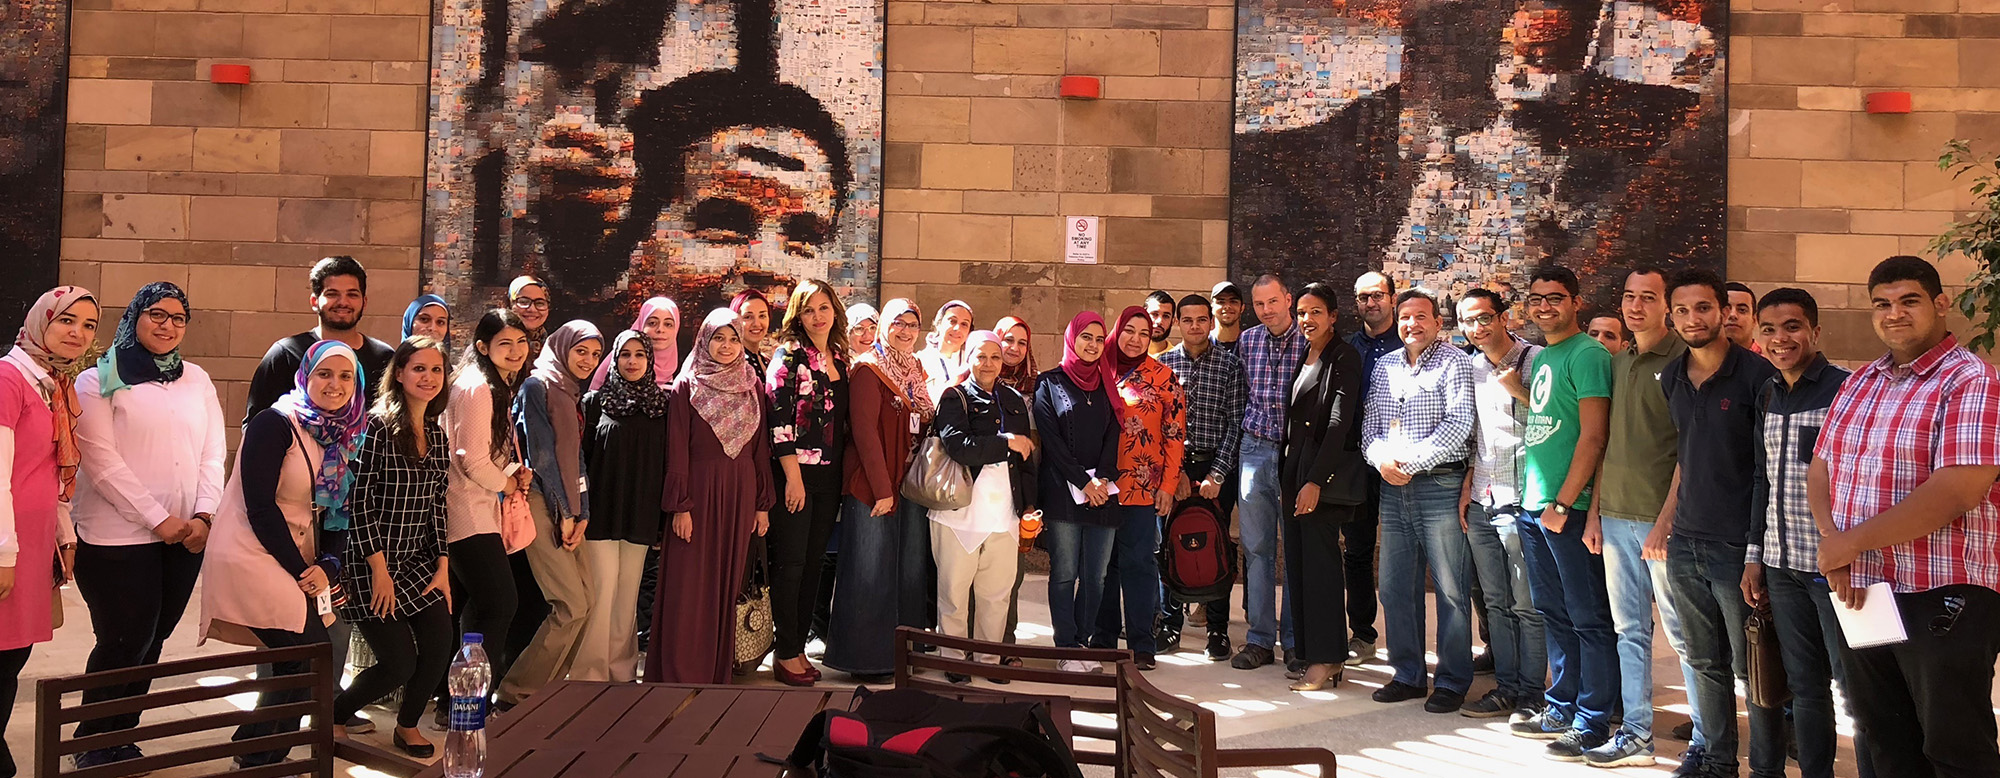 Dr. Karen Nelson and attendees of her lecture at the American University in Cairo.